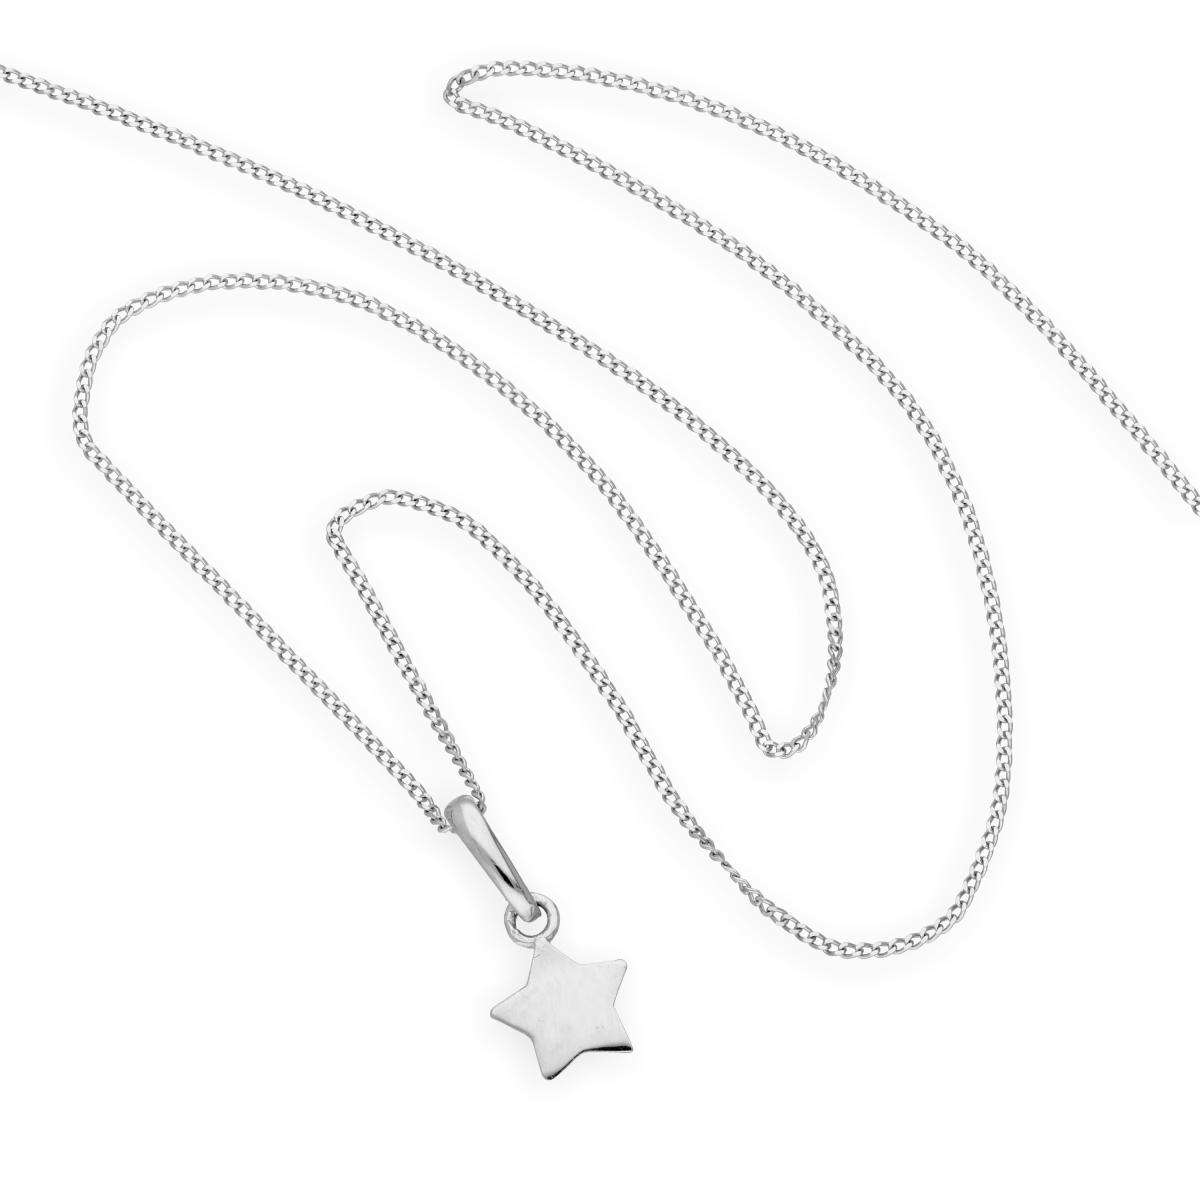 Alterative image for 9ct White Gold Star Pendant Necklace 16 - 20 Inches